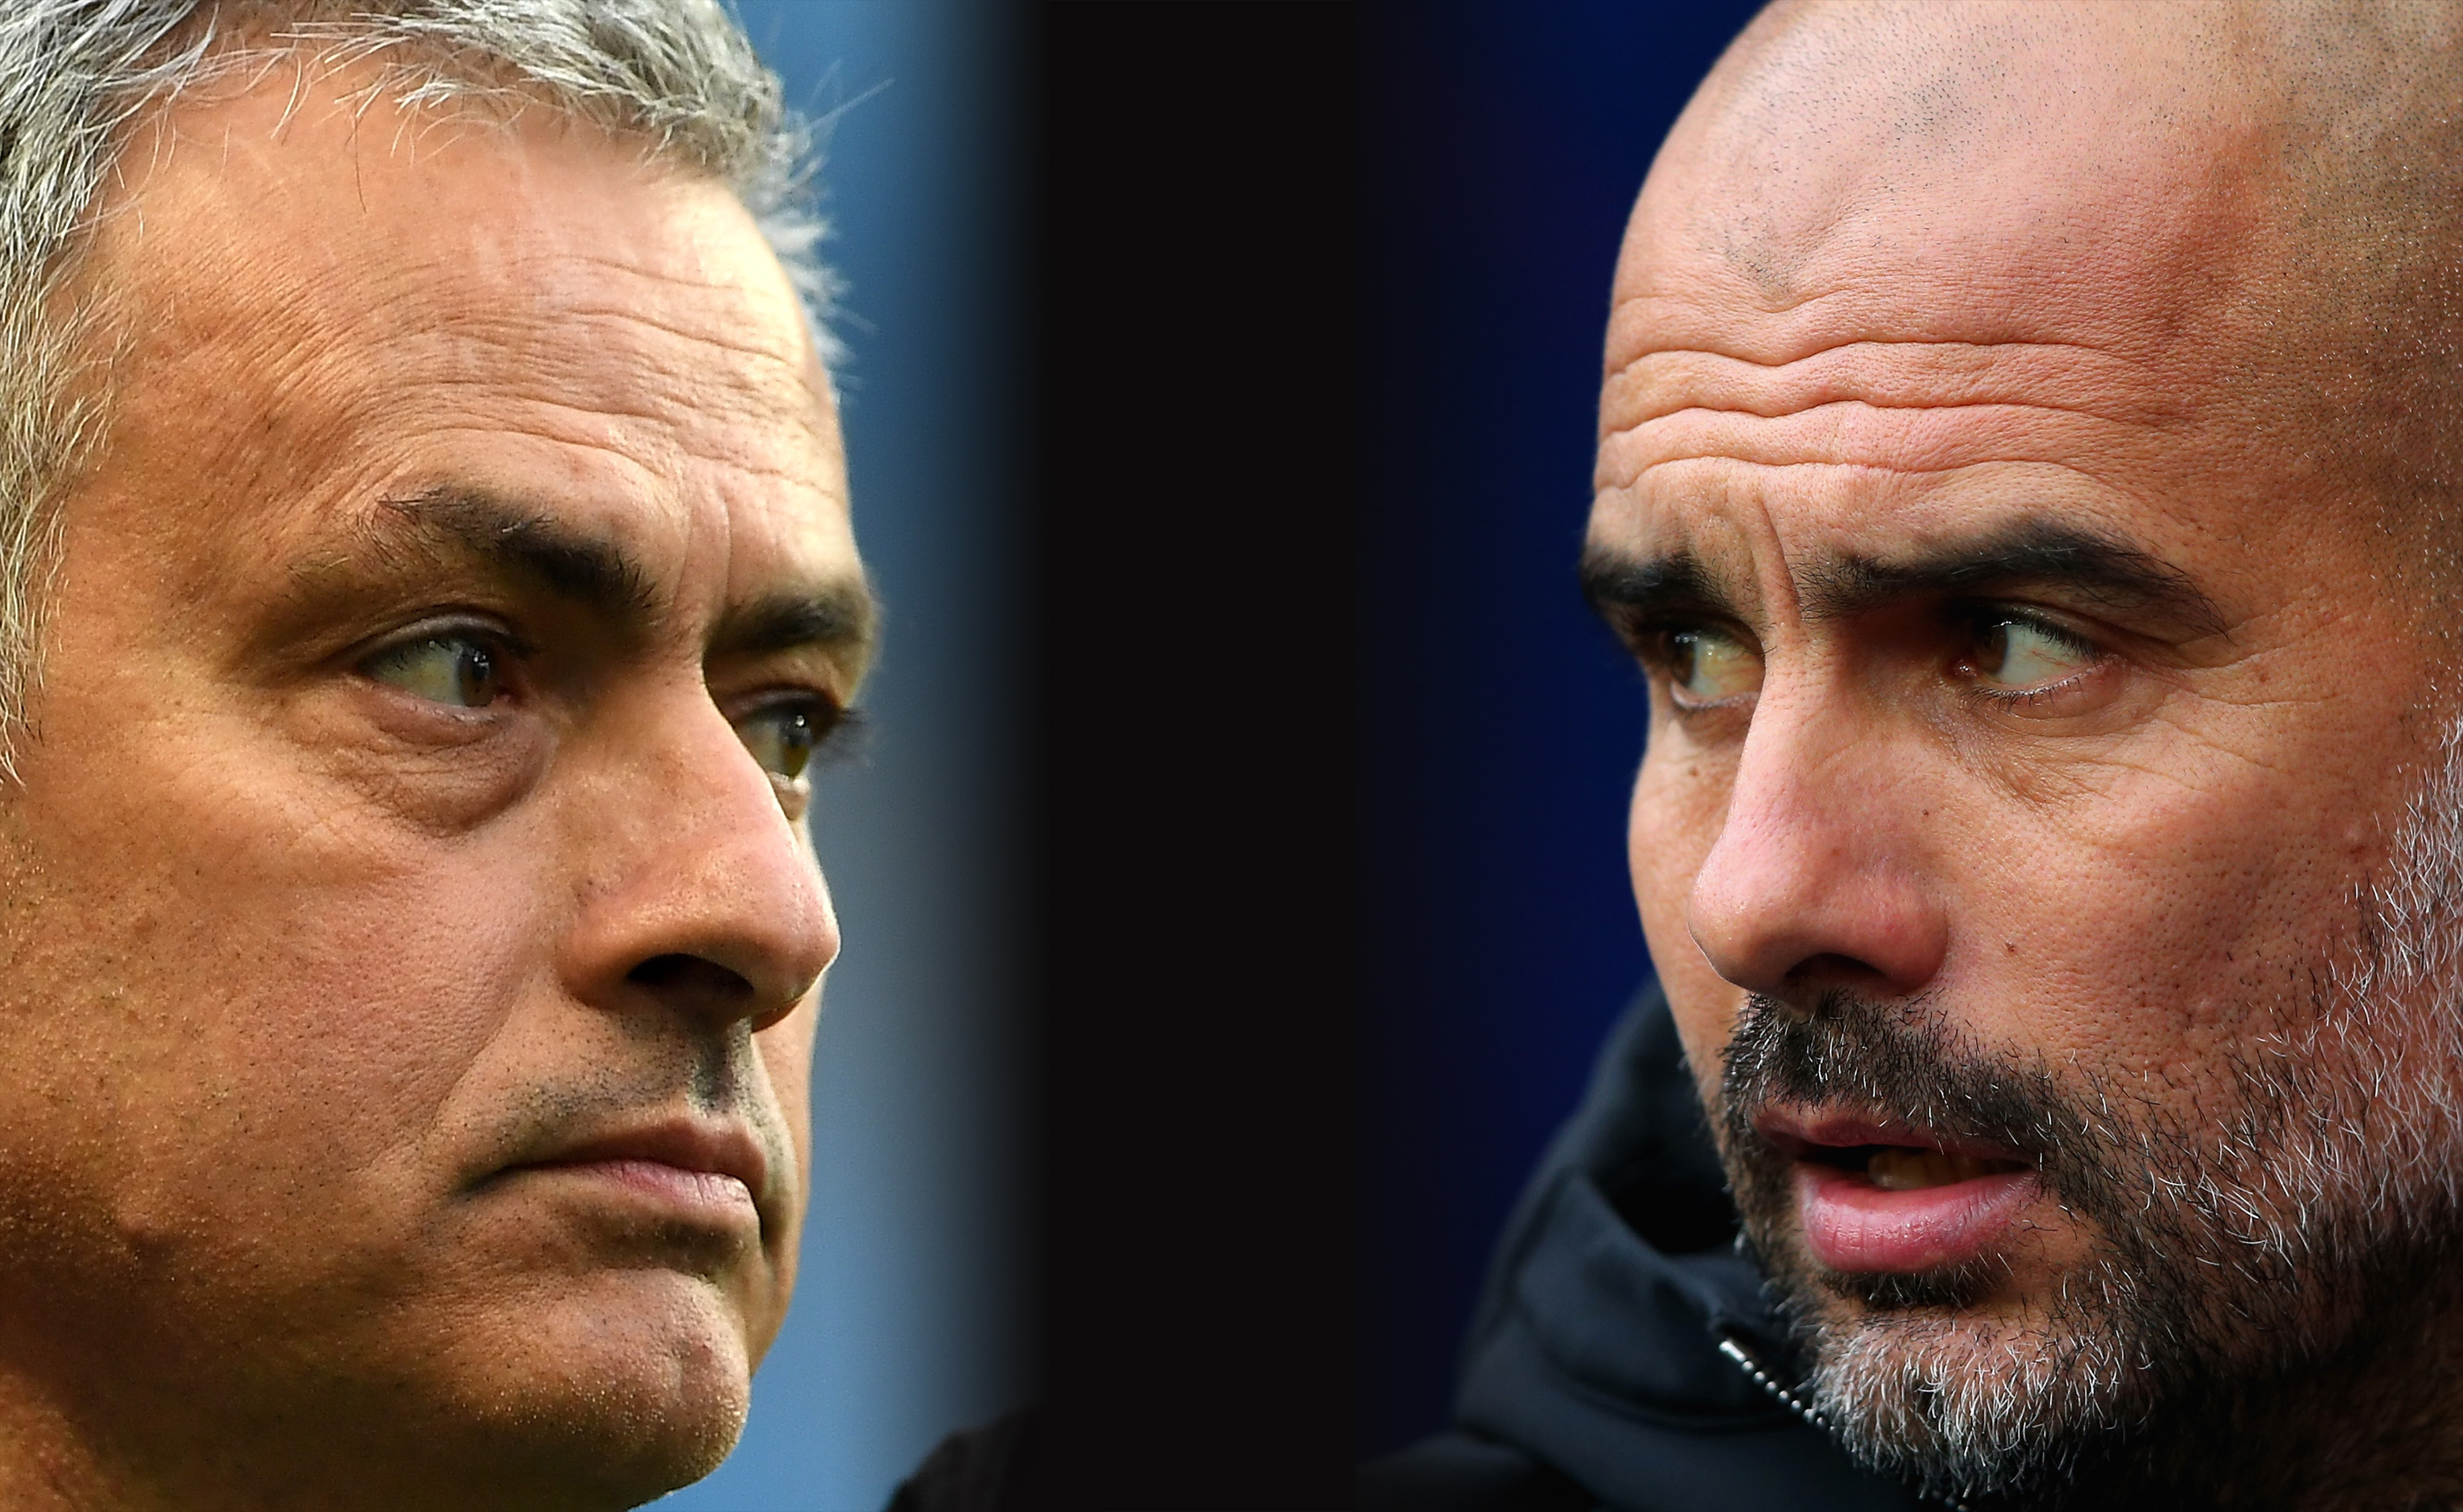 The bad blood is back! Mourinho and Guardiola blame each other for derby row